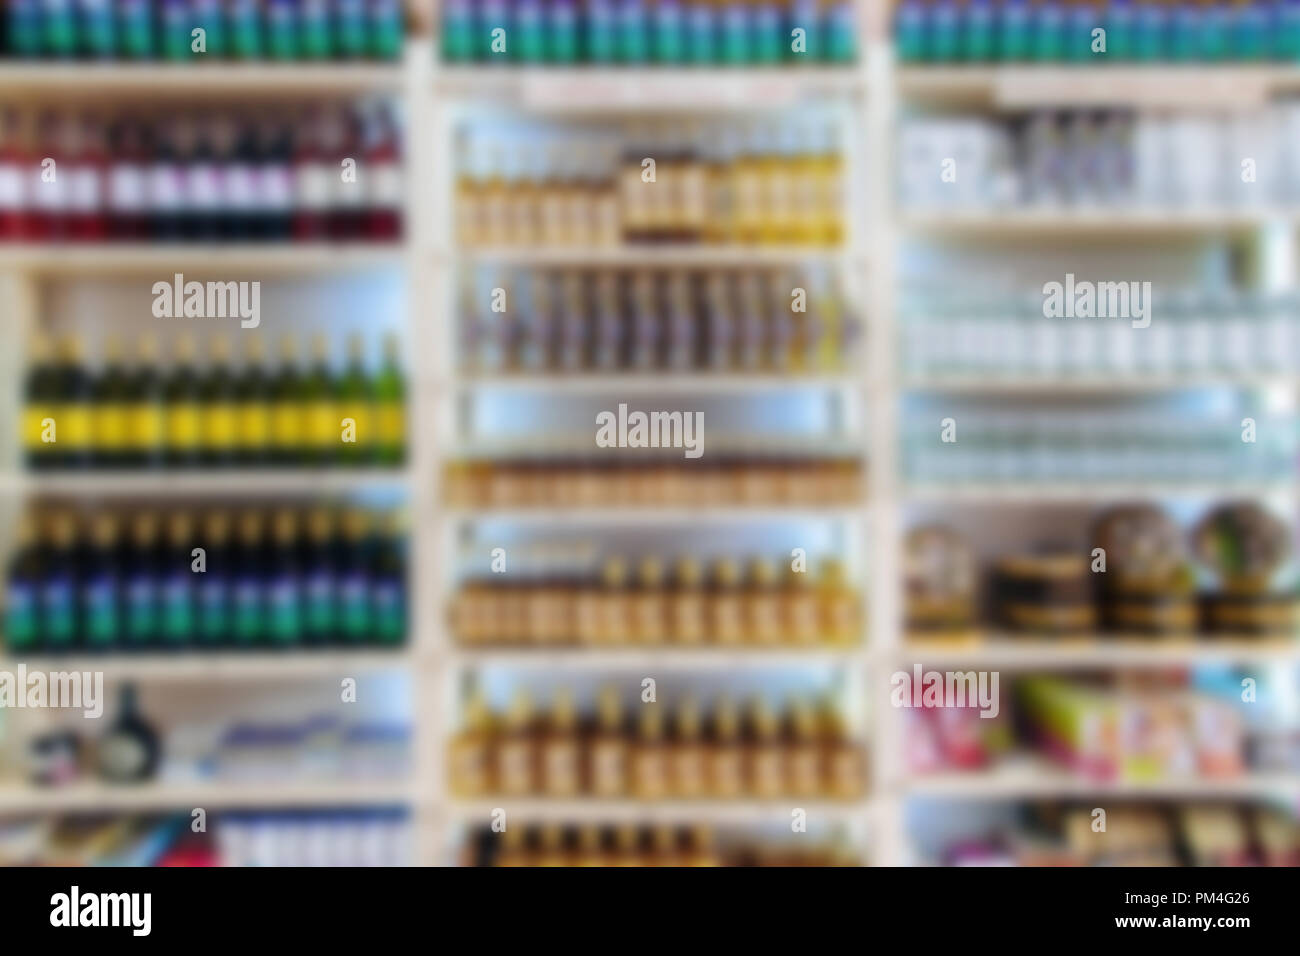 fridge with drinks and products in the supermarket blurred background - Stock Image